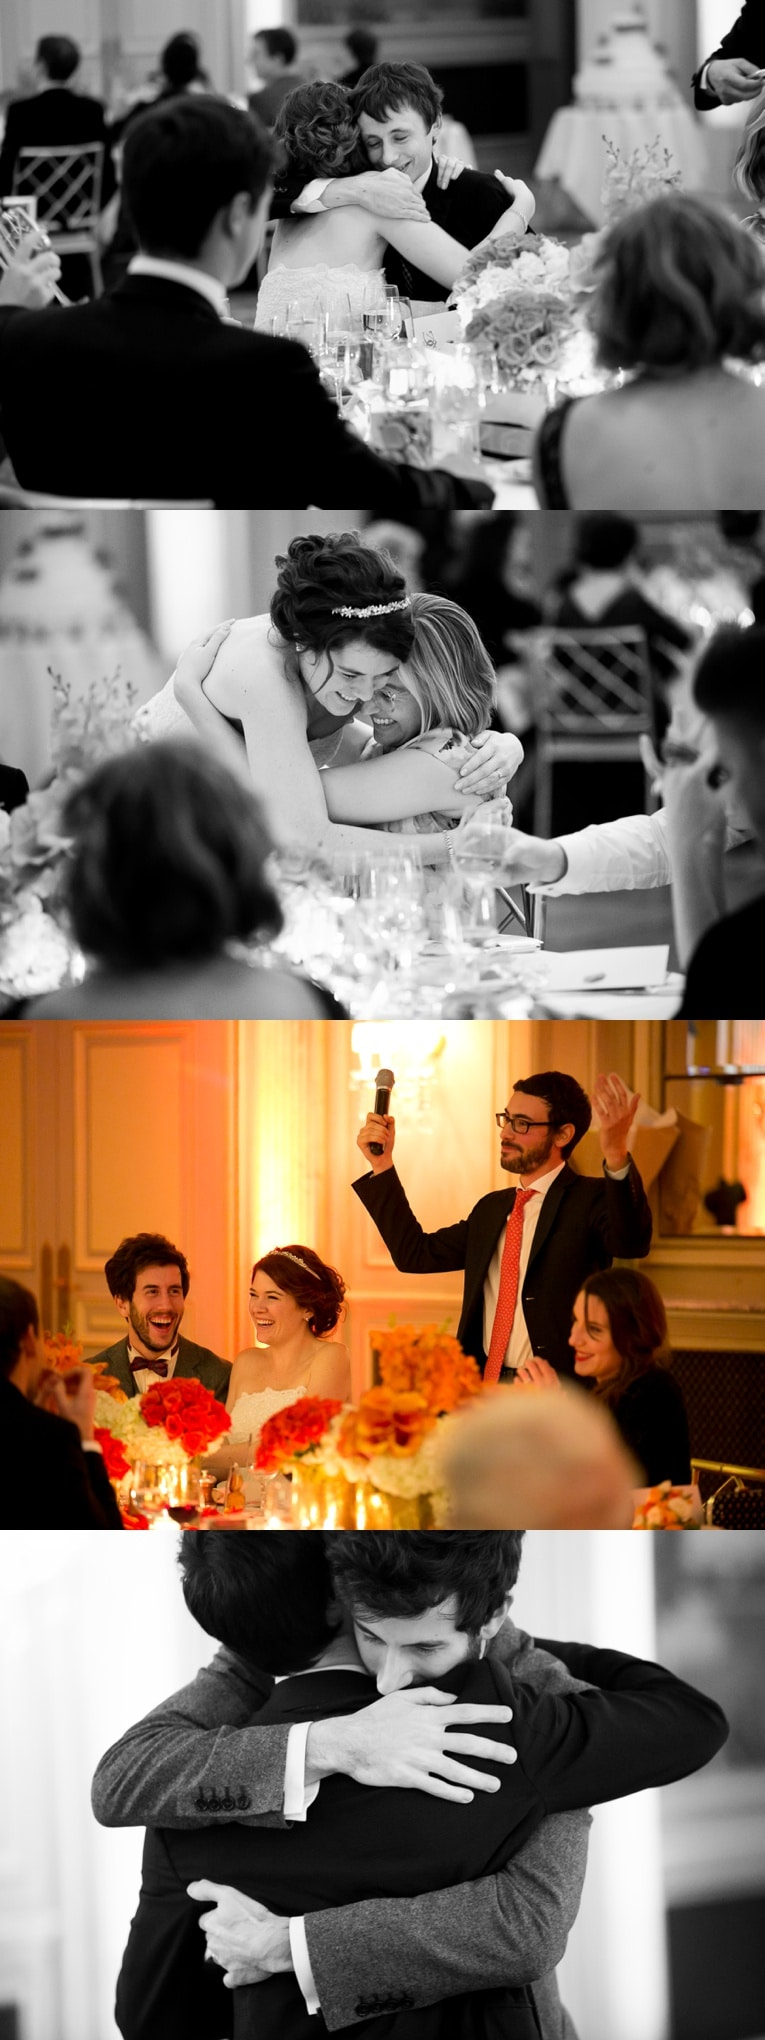 wedding-four-seasons-paris-19